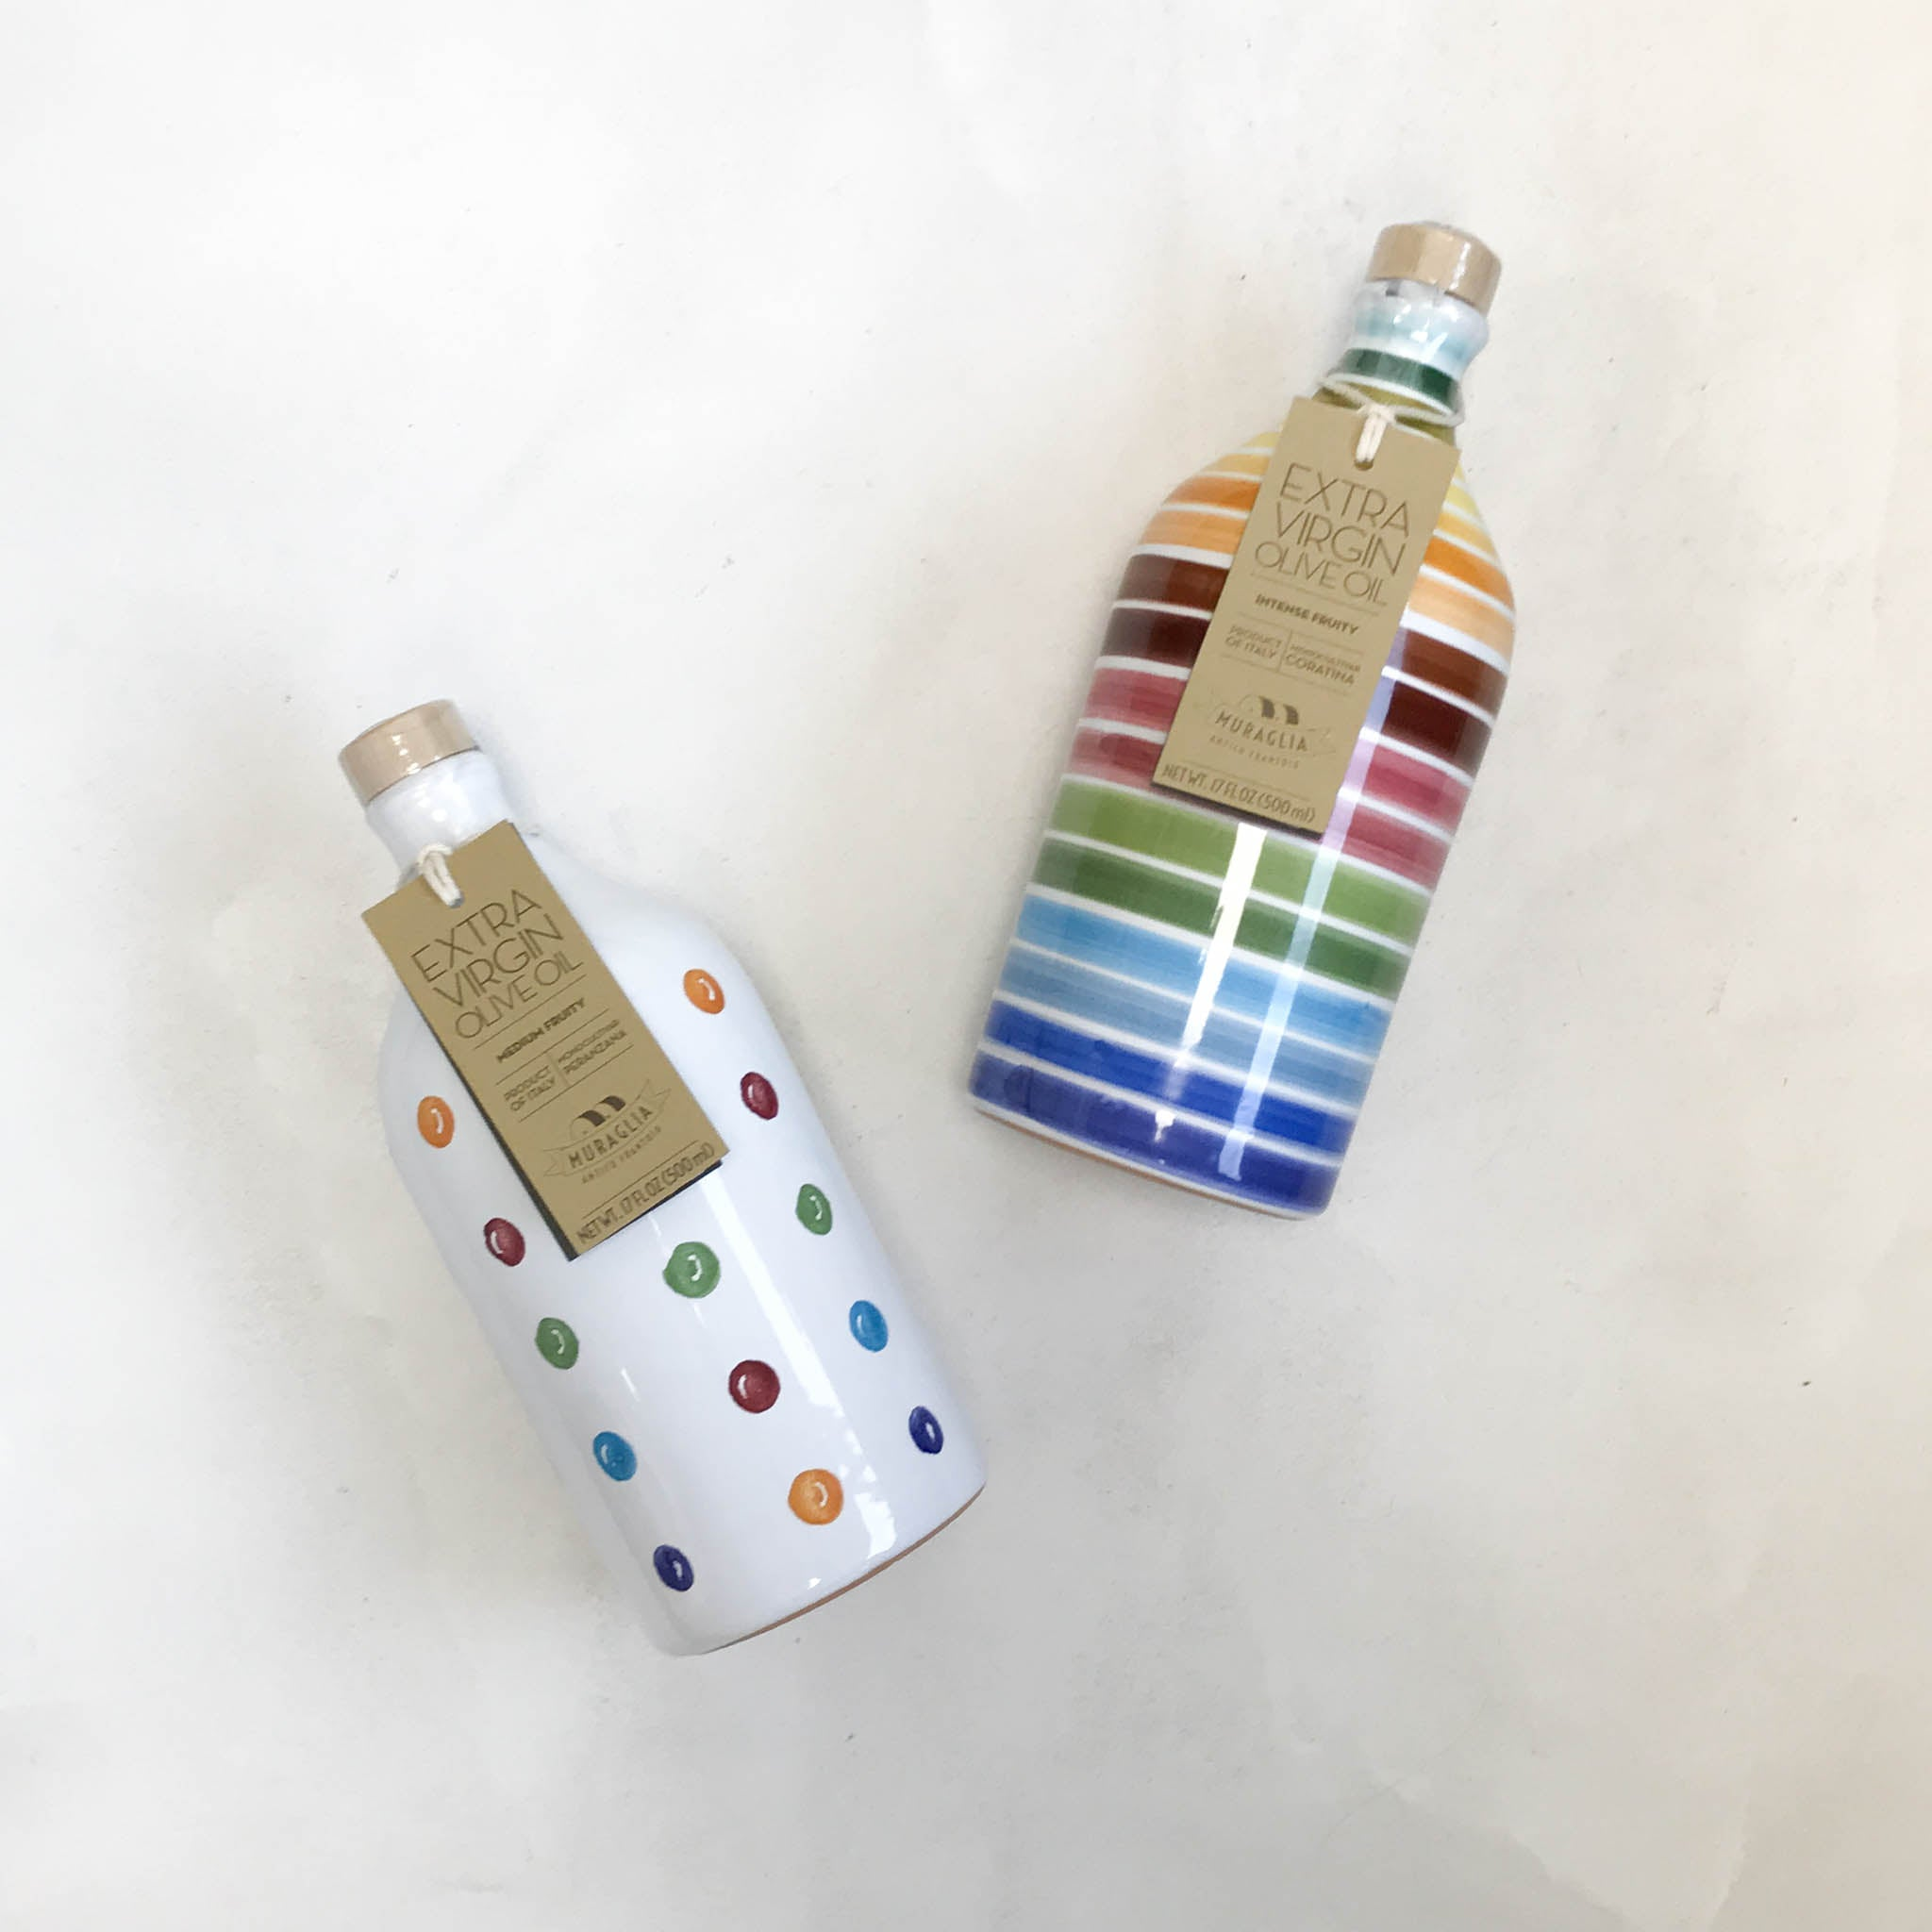 Medium Fruity Extra Virgin Olive Oil in Polka Dot Terracotta Bottle